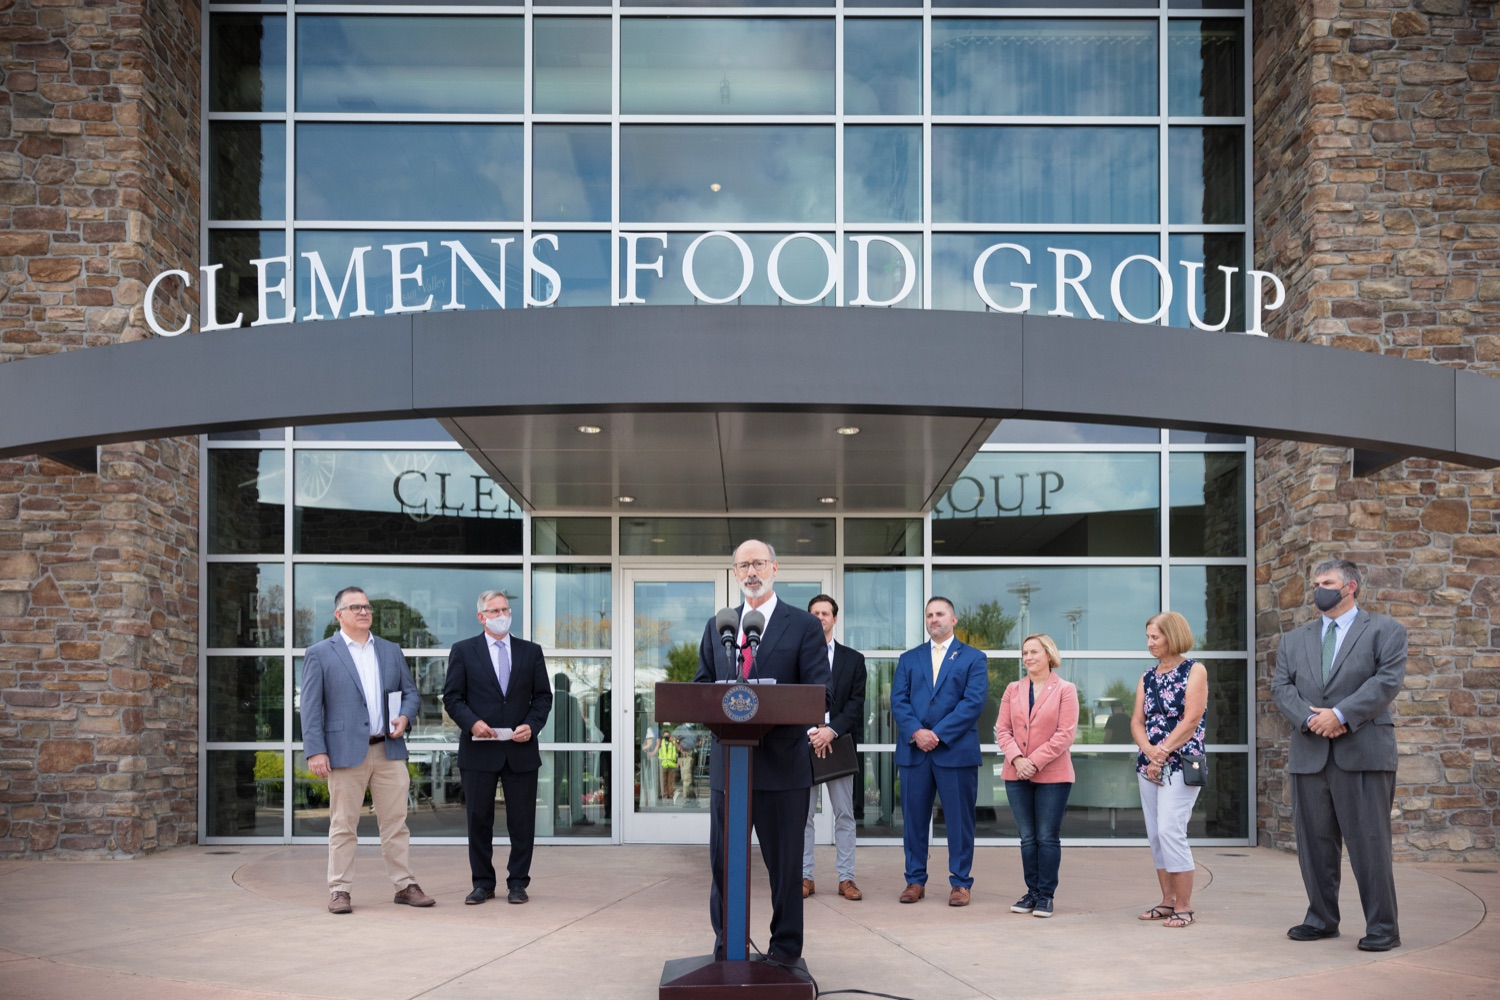 """<a href=""""https://filesource.wostreaming.net/commonwealthofpa/photo/20126_gov_economicDevelopment_dz_017.jpg"""" target=""""_blank"""">⇣Download Photo<br></a>Pennsylvania Governor Tom Wolf speaking with the press.  Governor Tom Wolf joined Clemens Food Group leaders, Agriculture Secretary Russell Redding, Sen. Maria Collett, Rep. Steve Malagari and members of the Governors Action Team today to tour the construction of the companys new facility in Montgomery County. The Wolf Administration supported the project which will expand the business operations and create new jobs in the region. Hatfield, PA   October 8, 2021"""